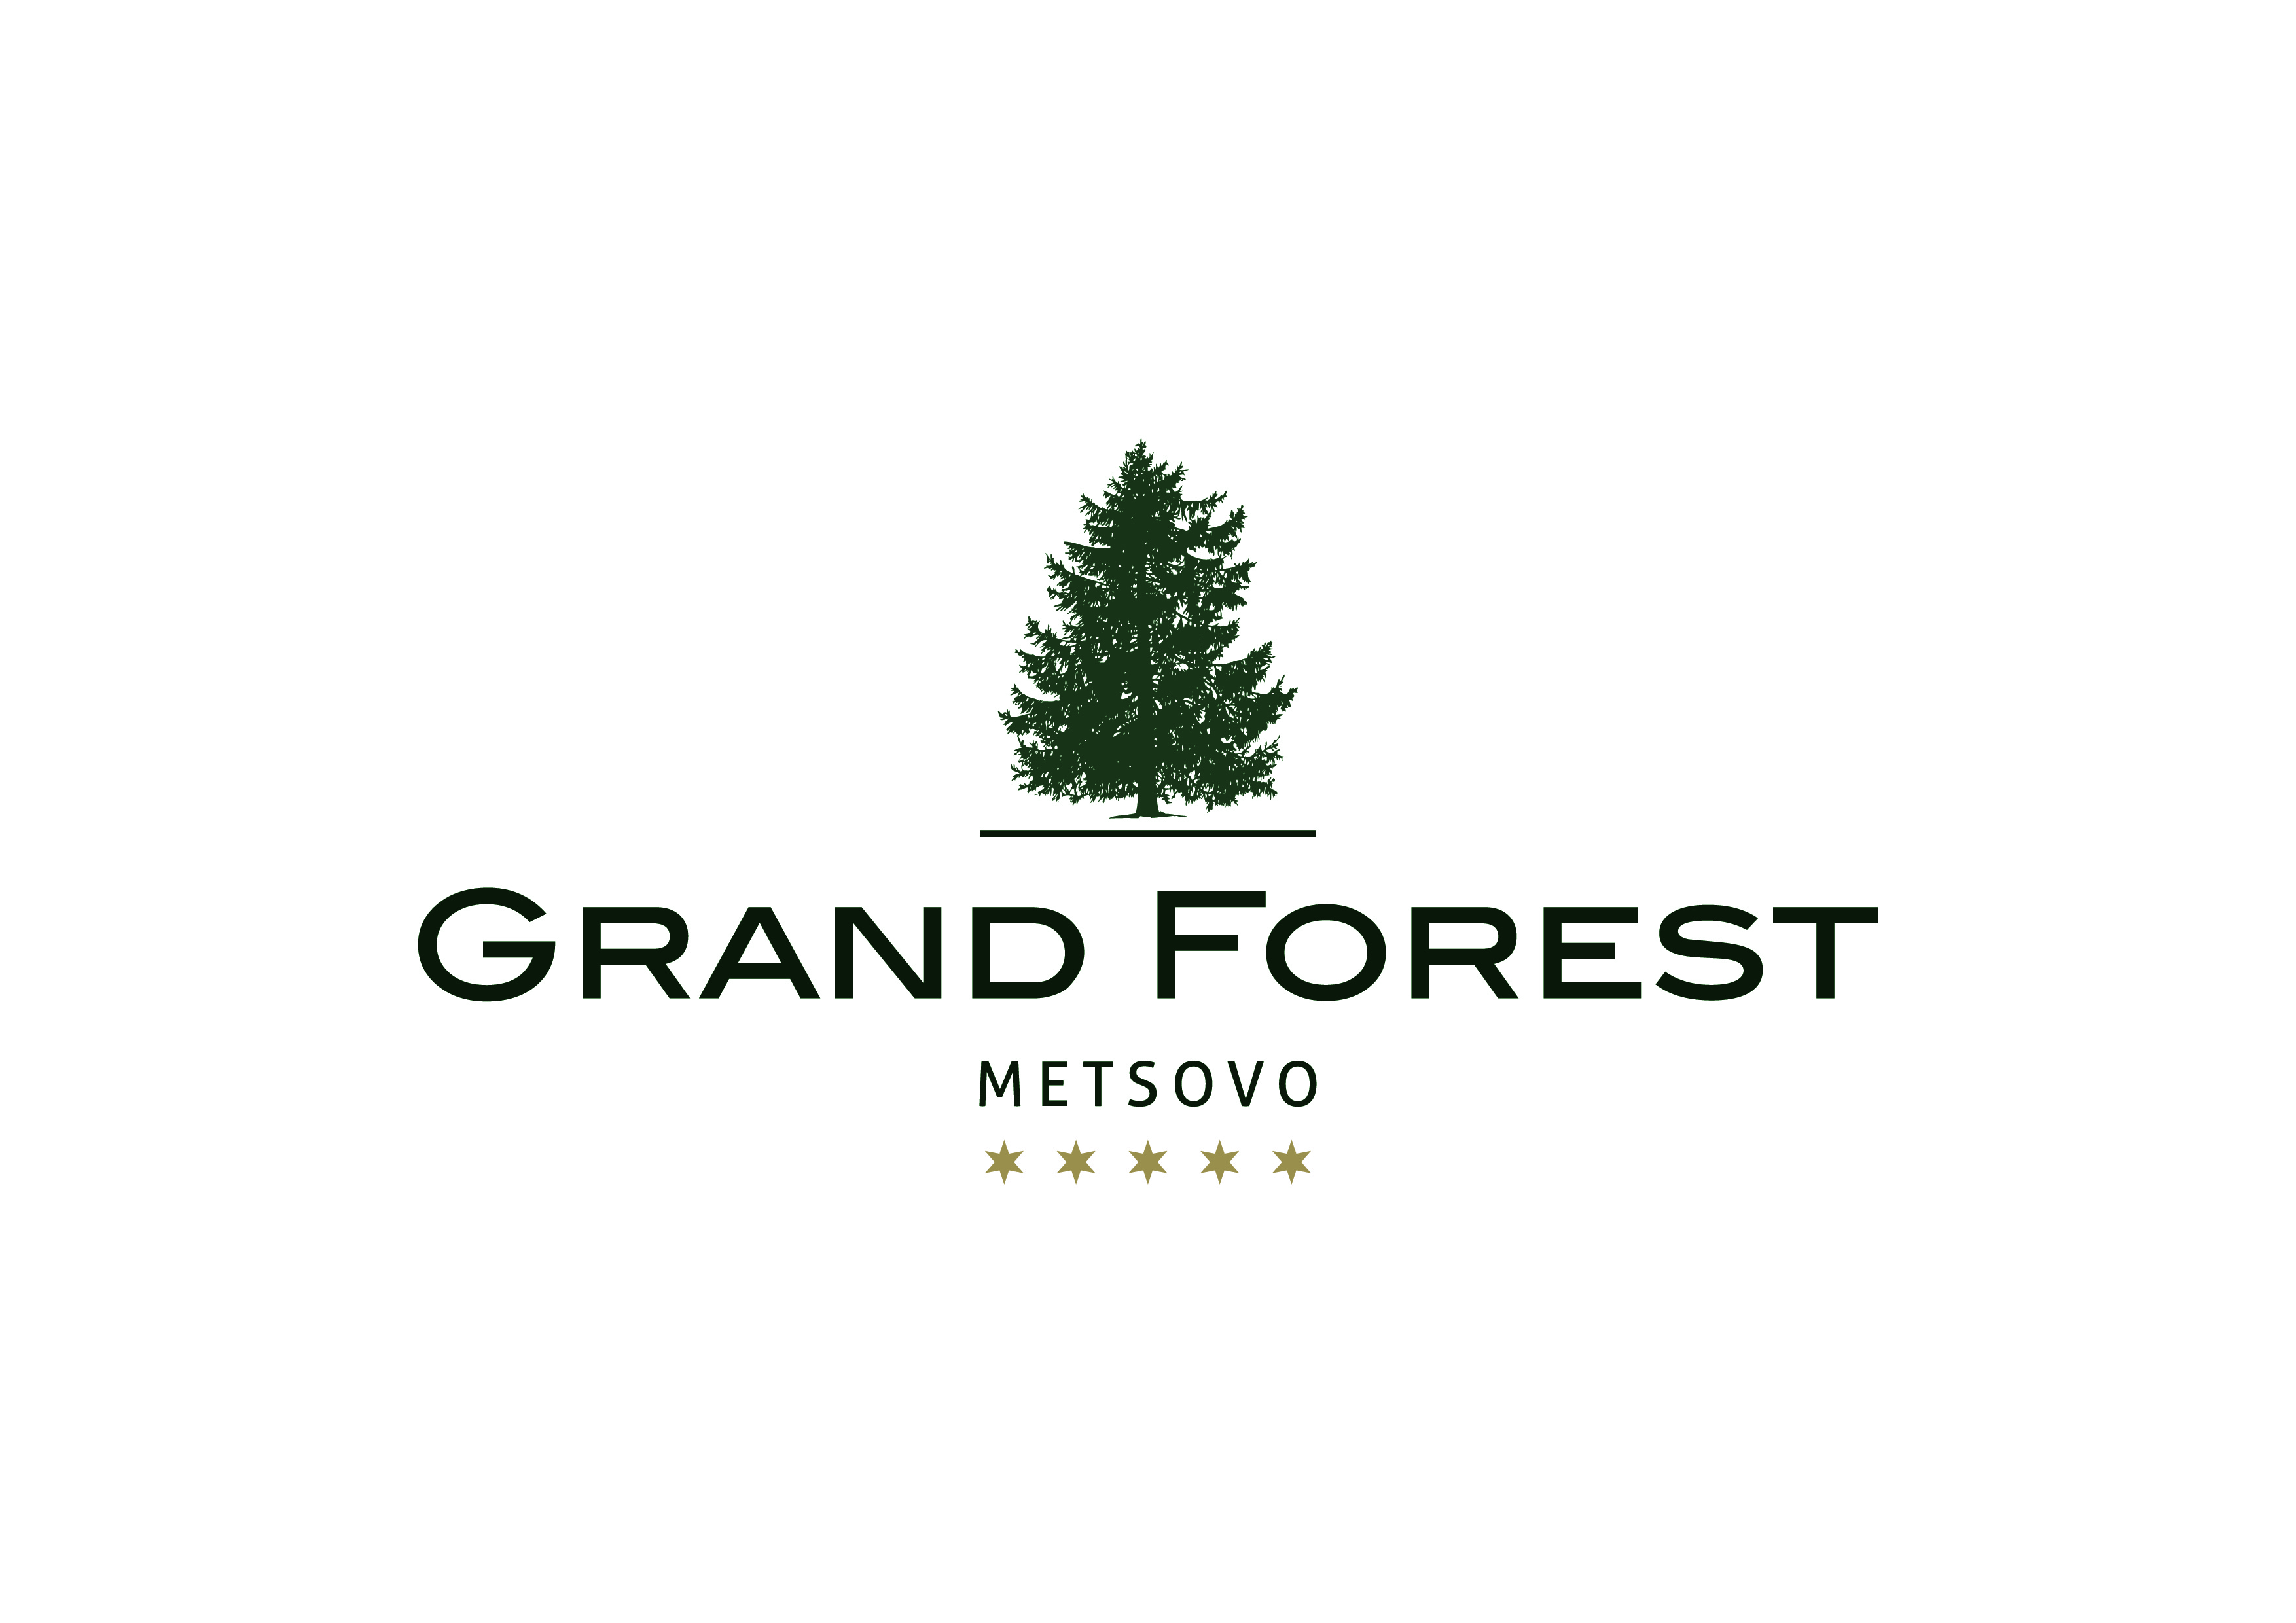 Grand_Forest_Metsovo